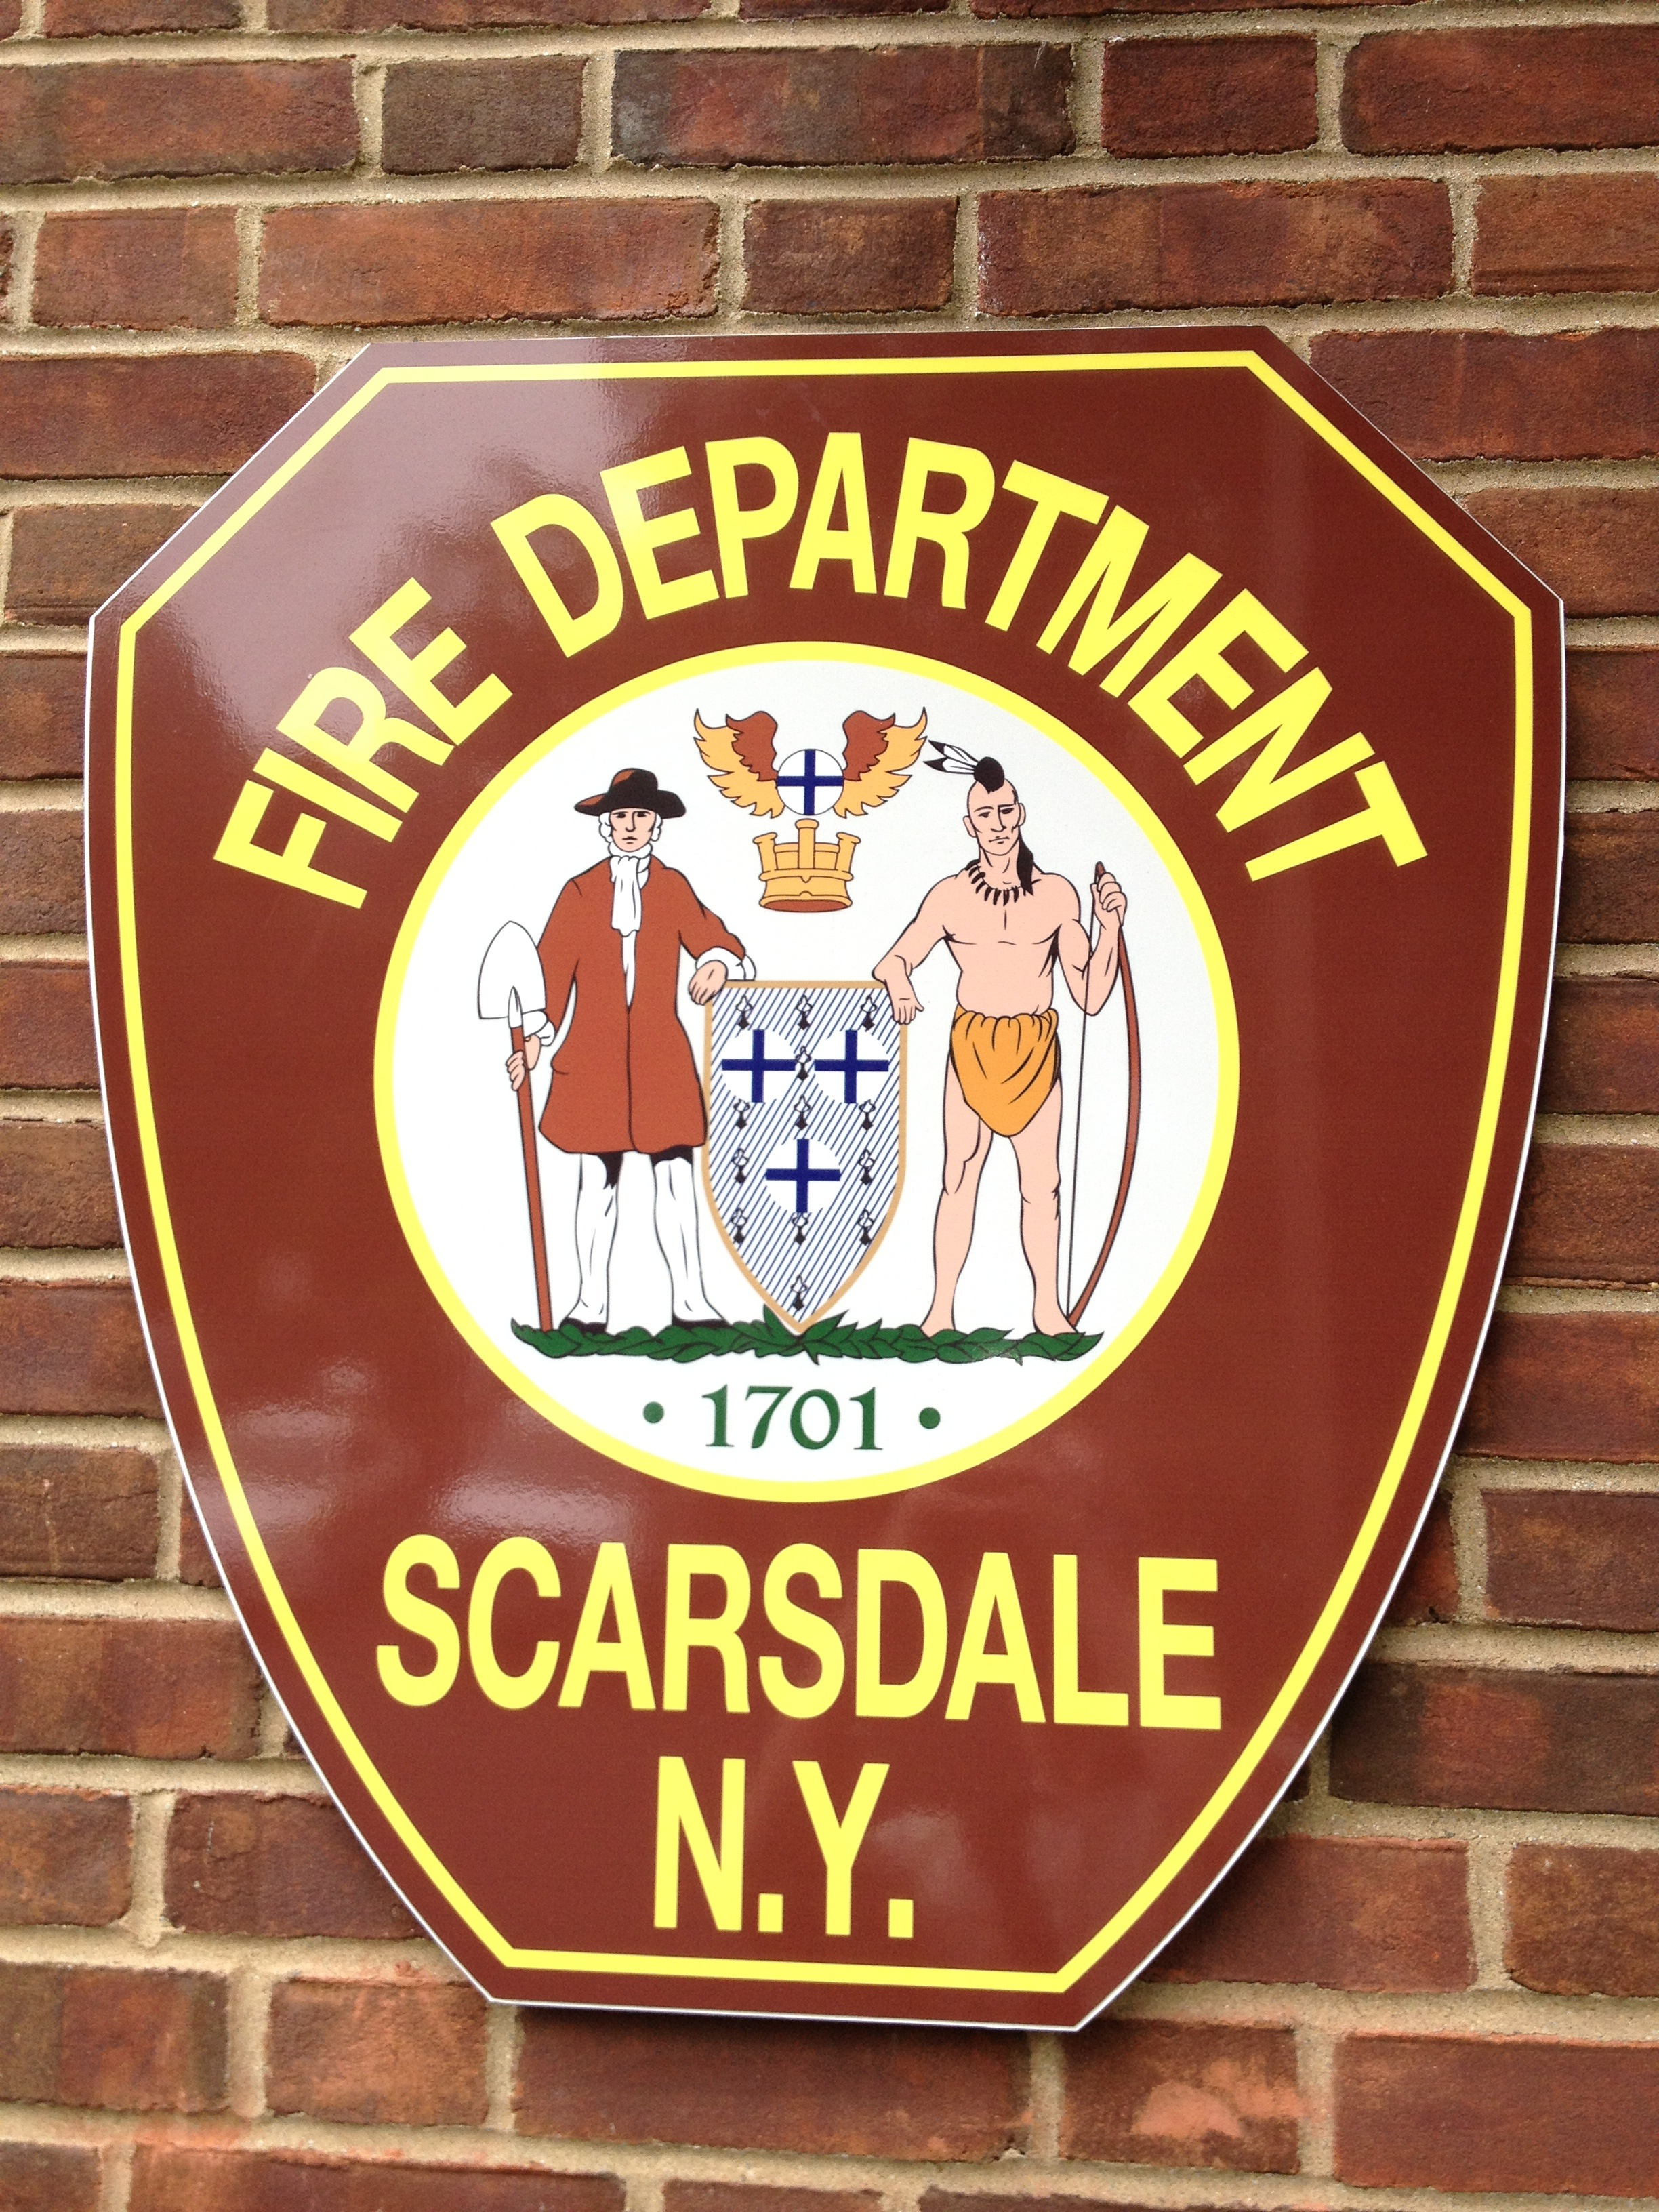 Scarsdale firefighters extinguished smoldering coals in a grill Friday.